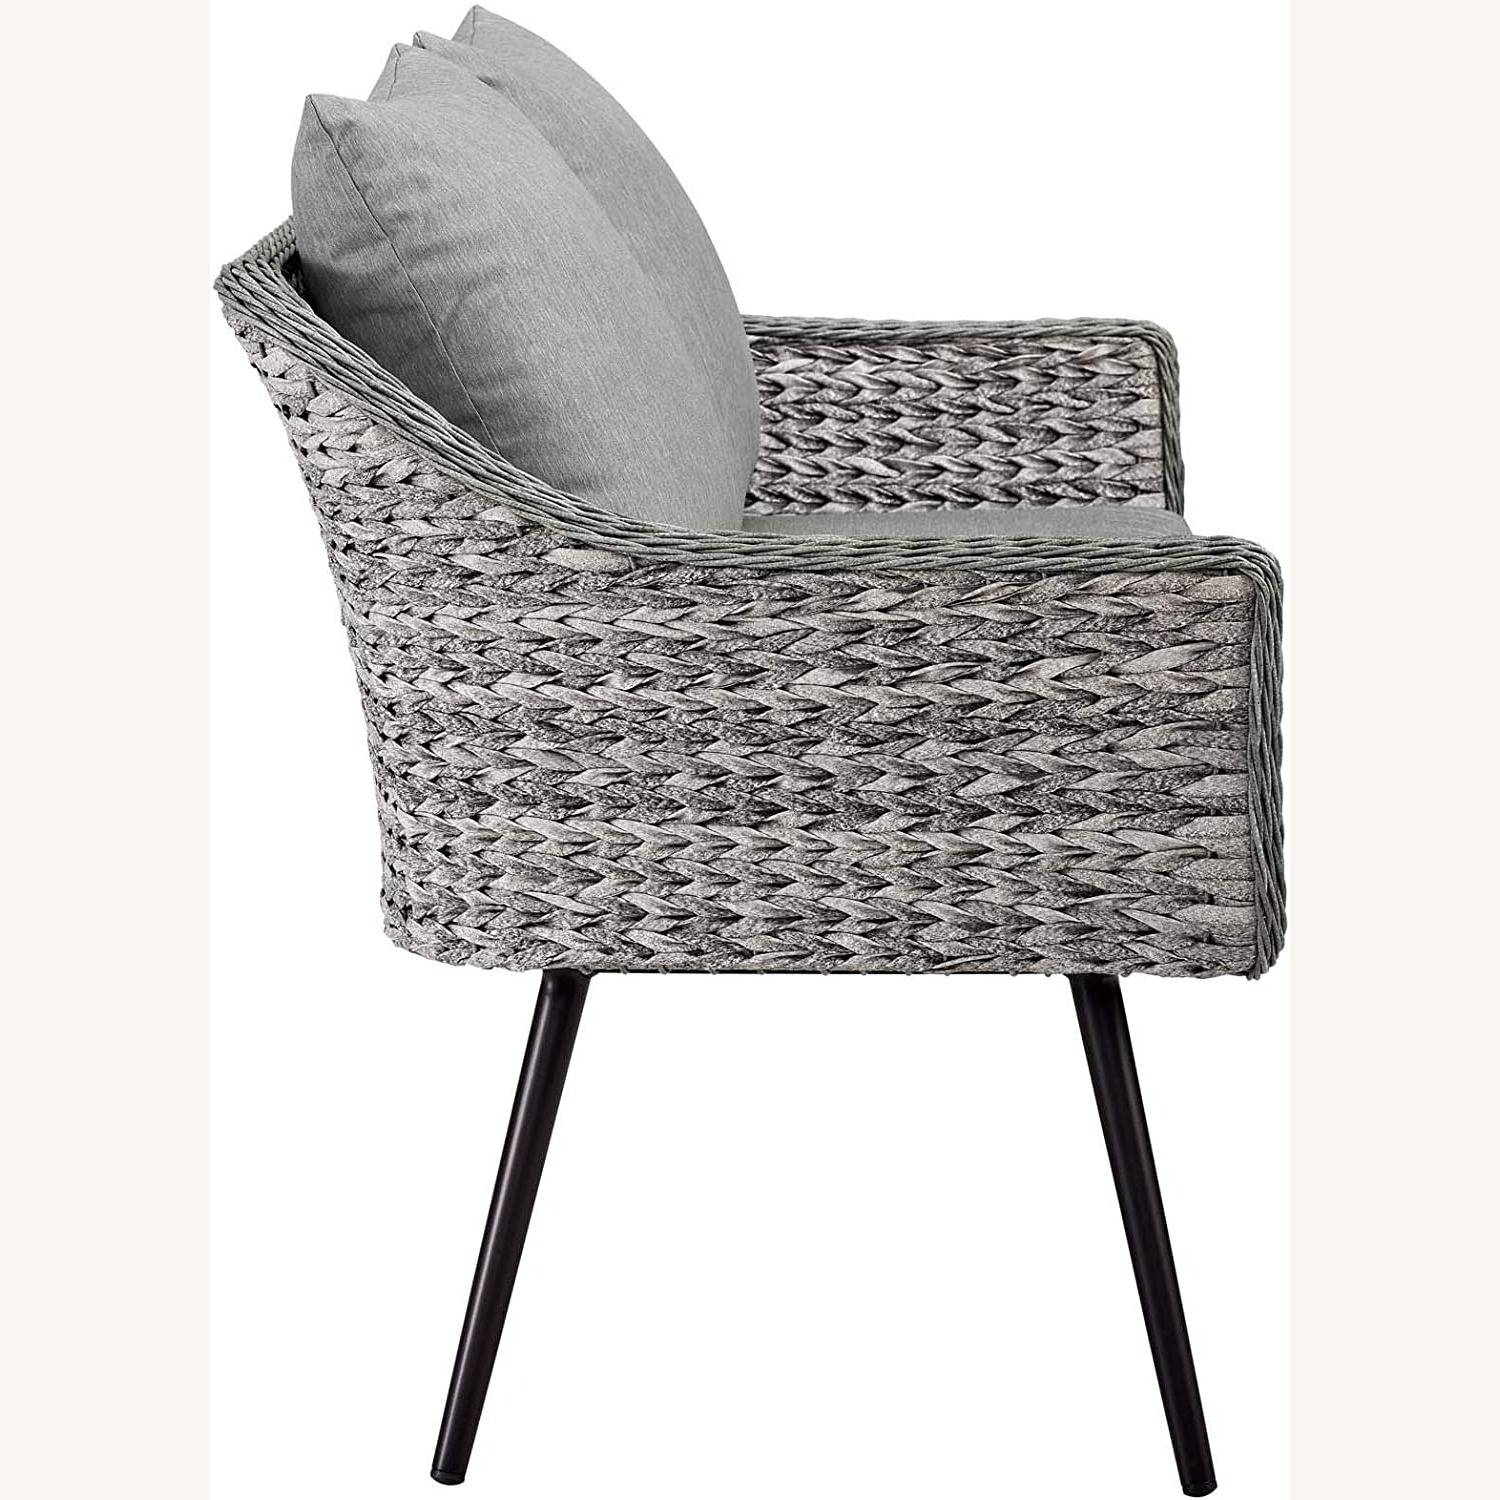 Outdoor Loveseat In Gray-On-Gray Tone Finish - image-2